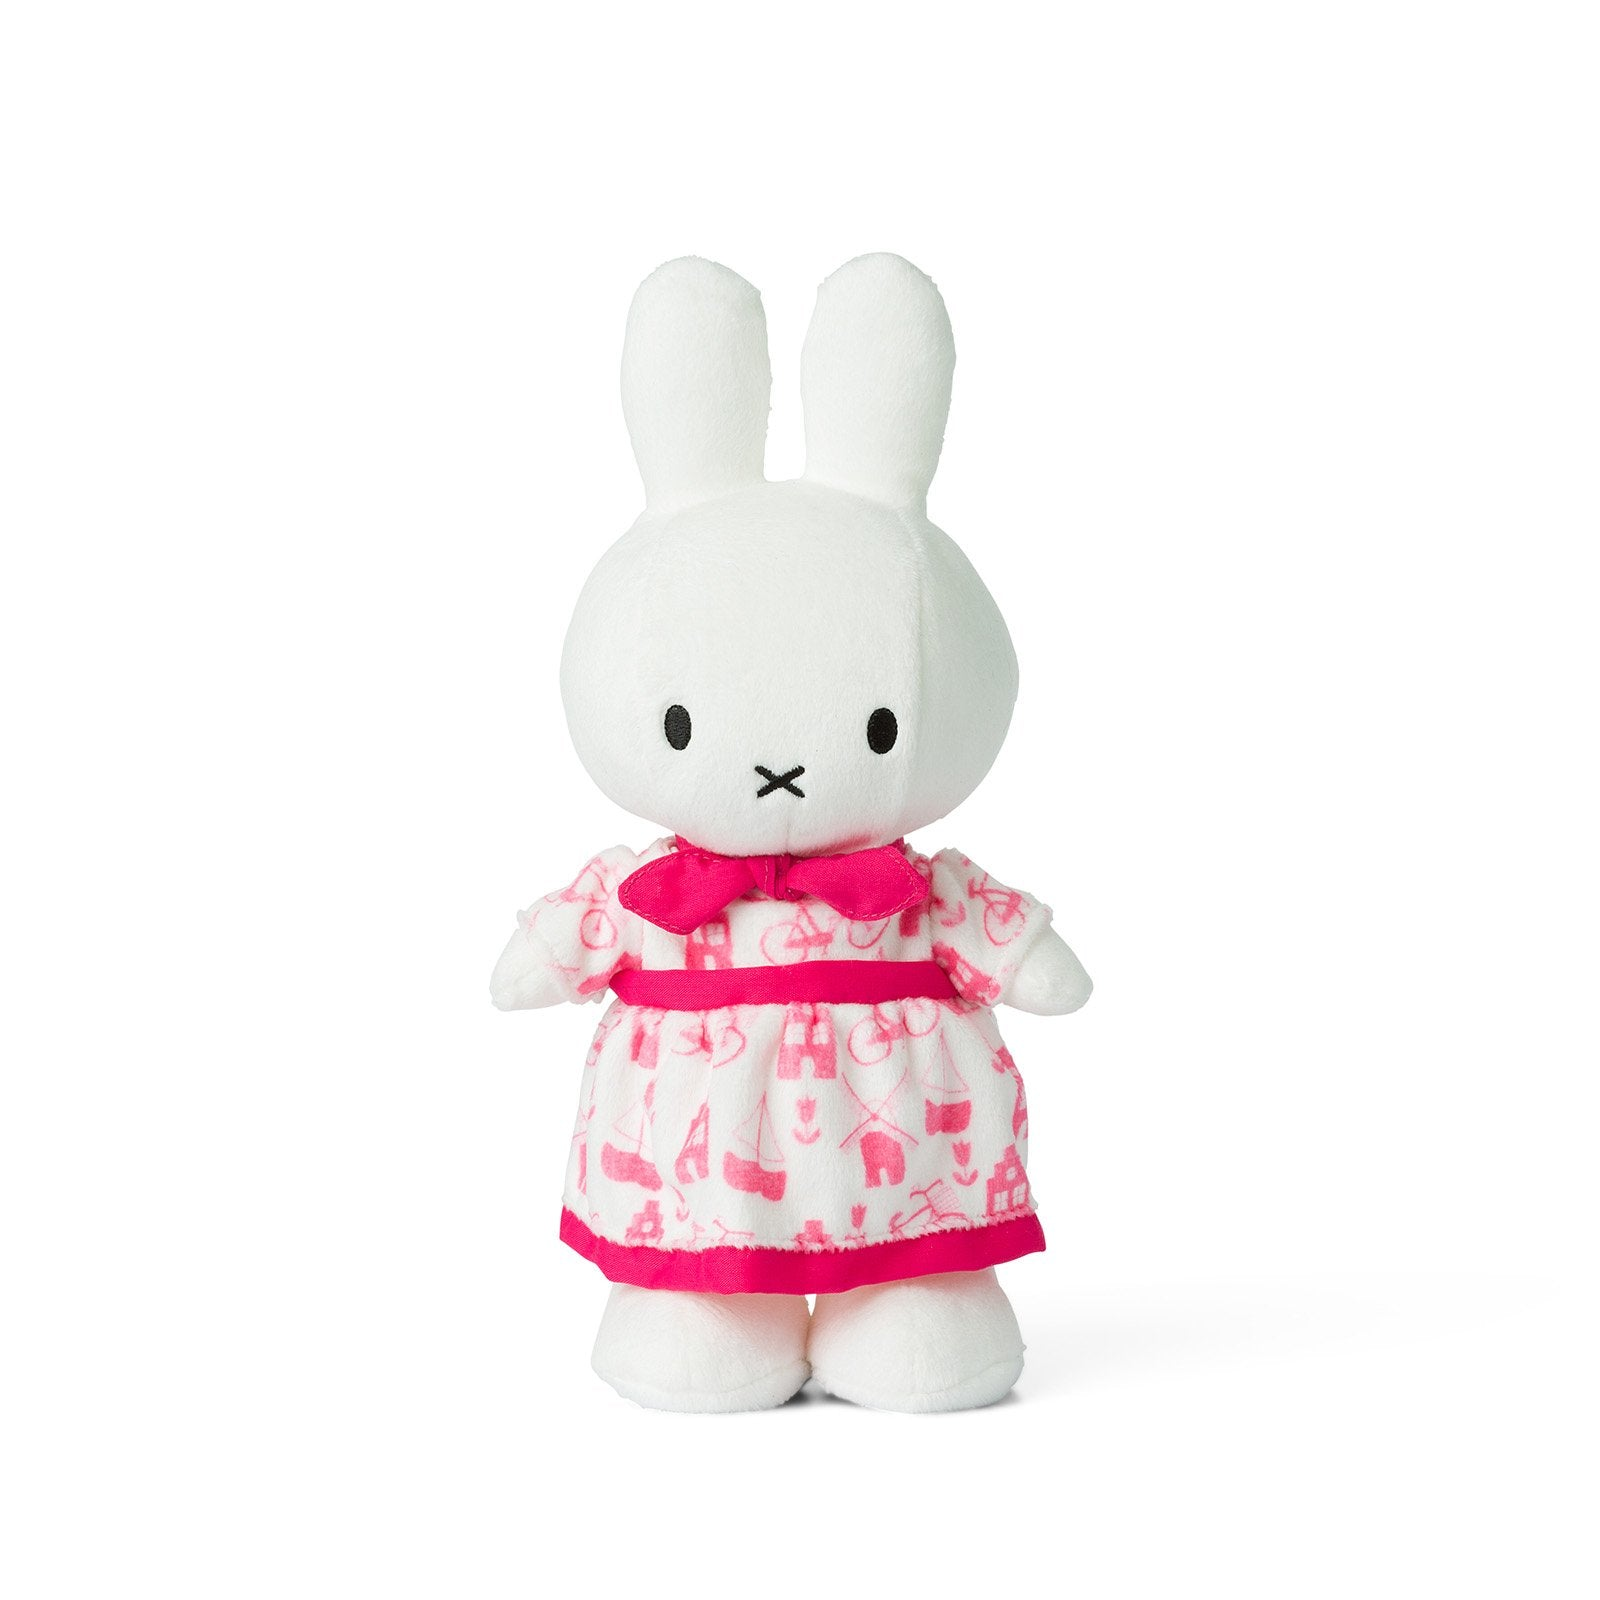 Miffy Soft Toy 34cm , pink dress